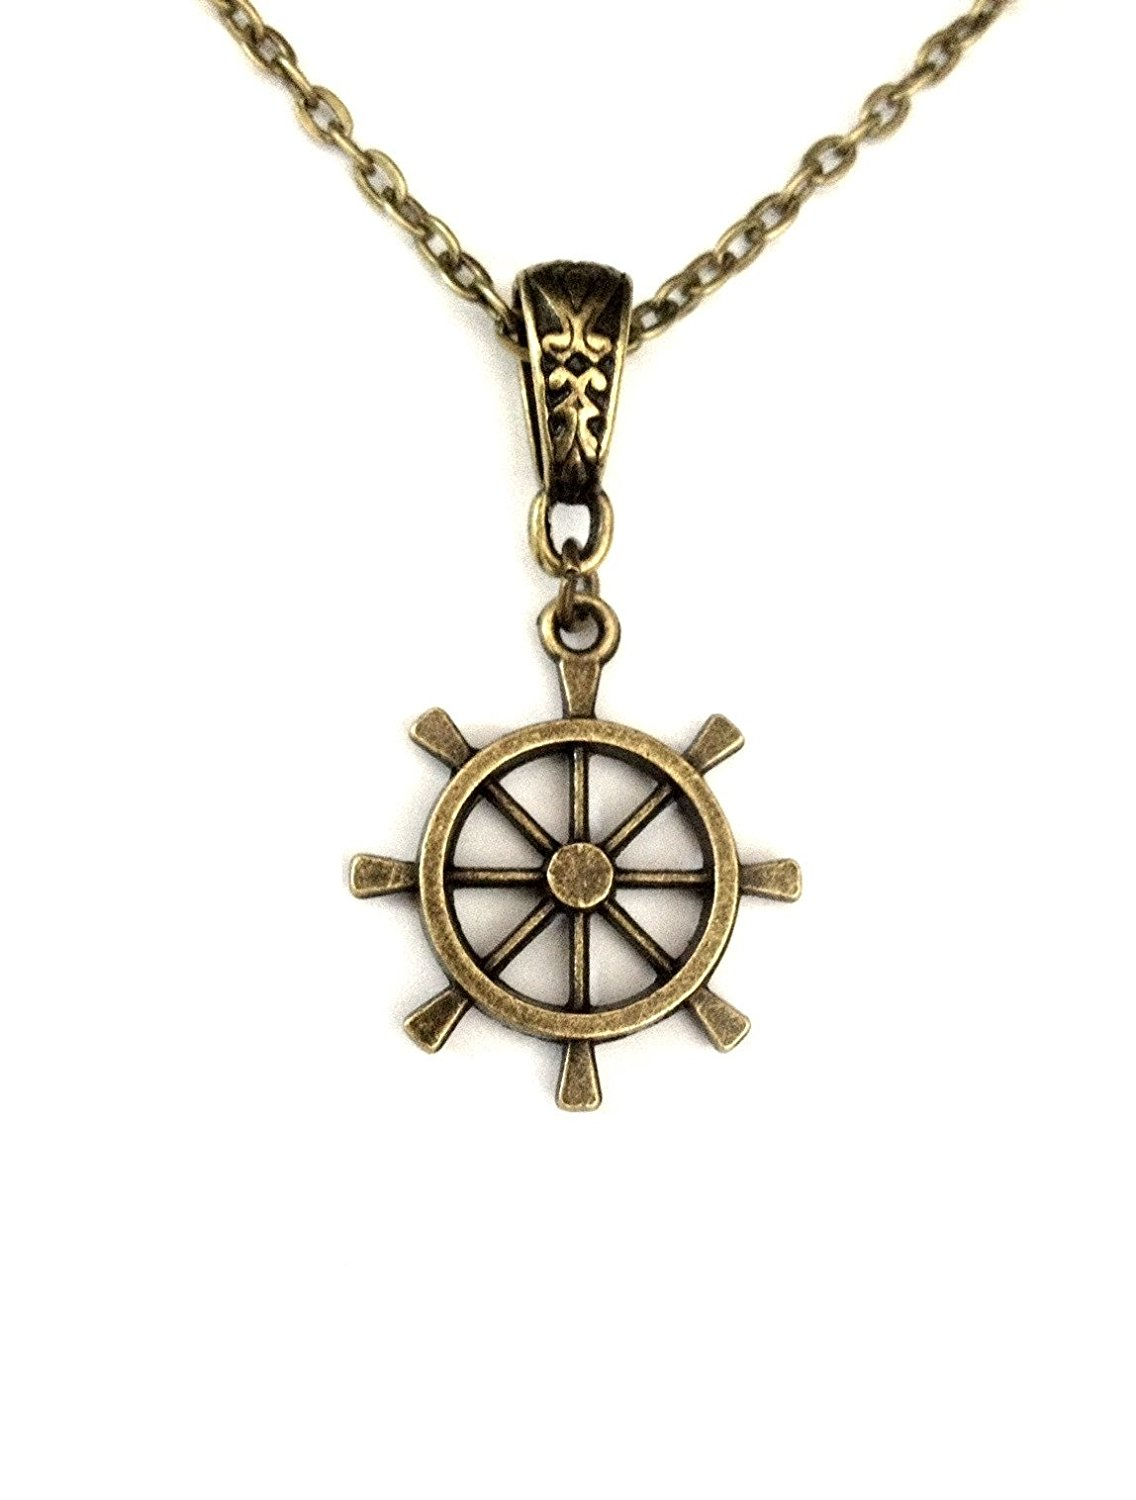 Cheap dharma wheel pendant find dharma wheel pendant deals on line dharma wheel solid antique bronze necklace womens boxed gift wrapped aloadofball Gallery